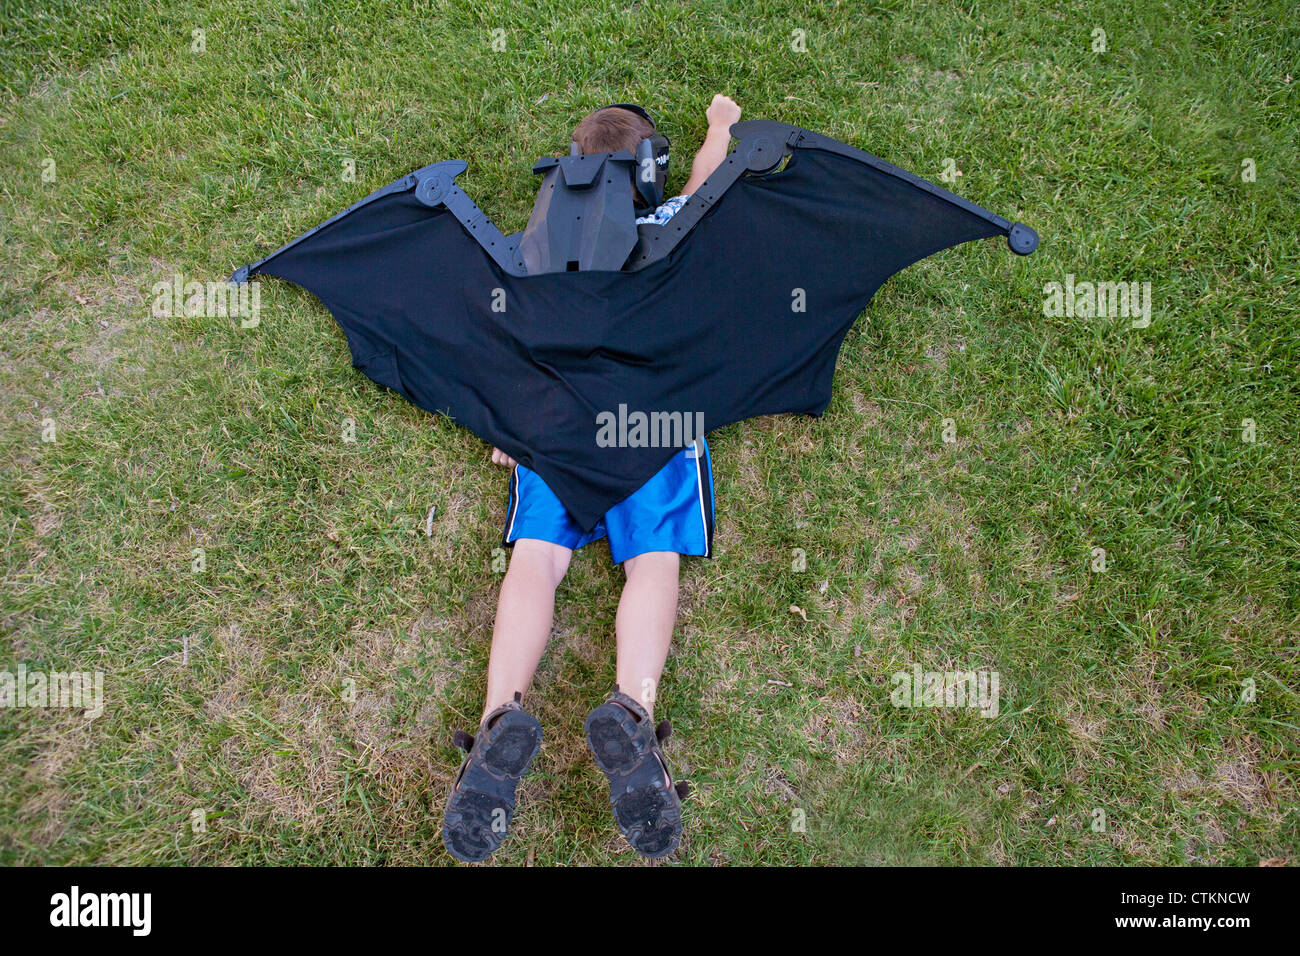 Boy pretending to be Batman, wearing giant wings, pretends to fly while laying in the grass. - Stock Image